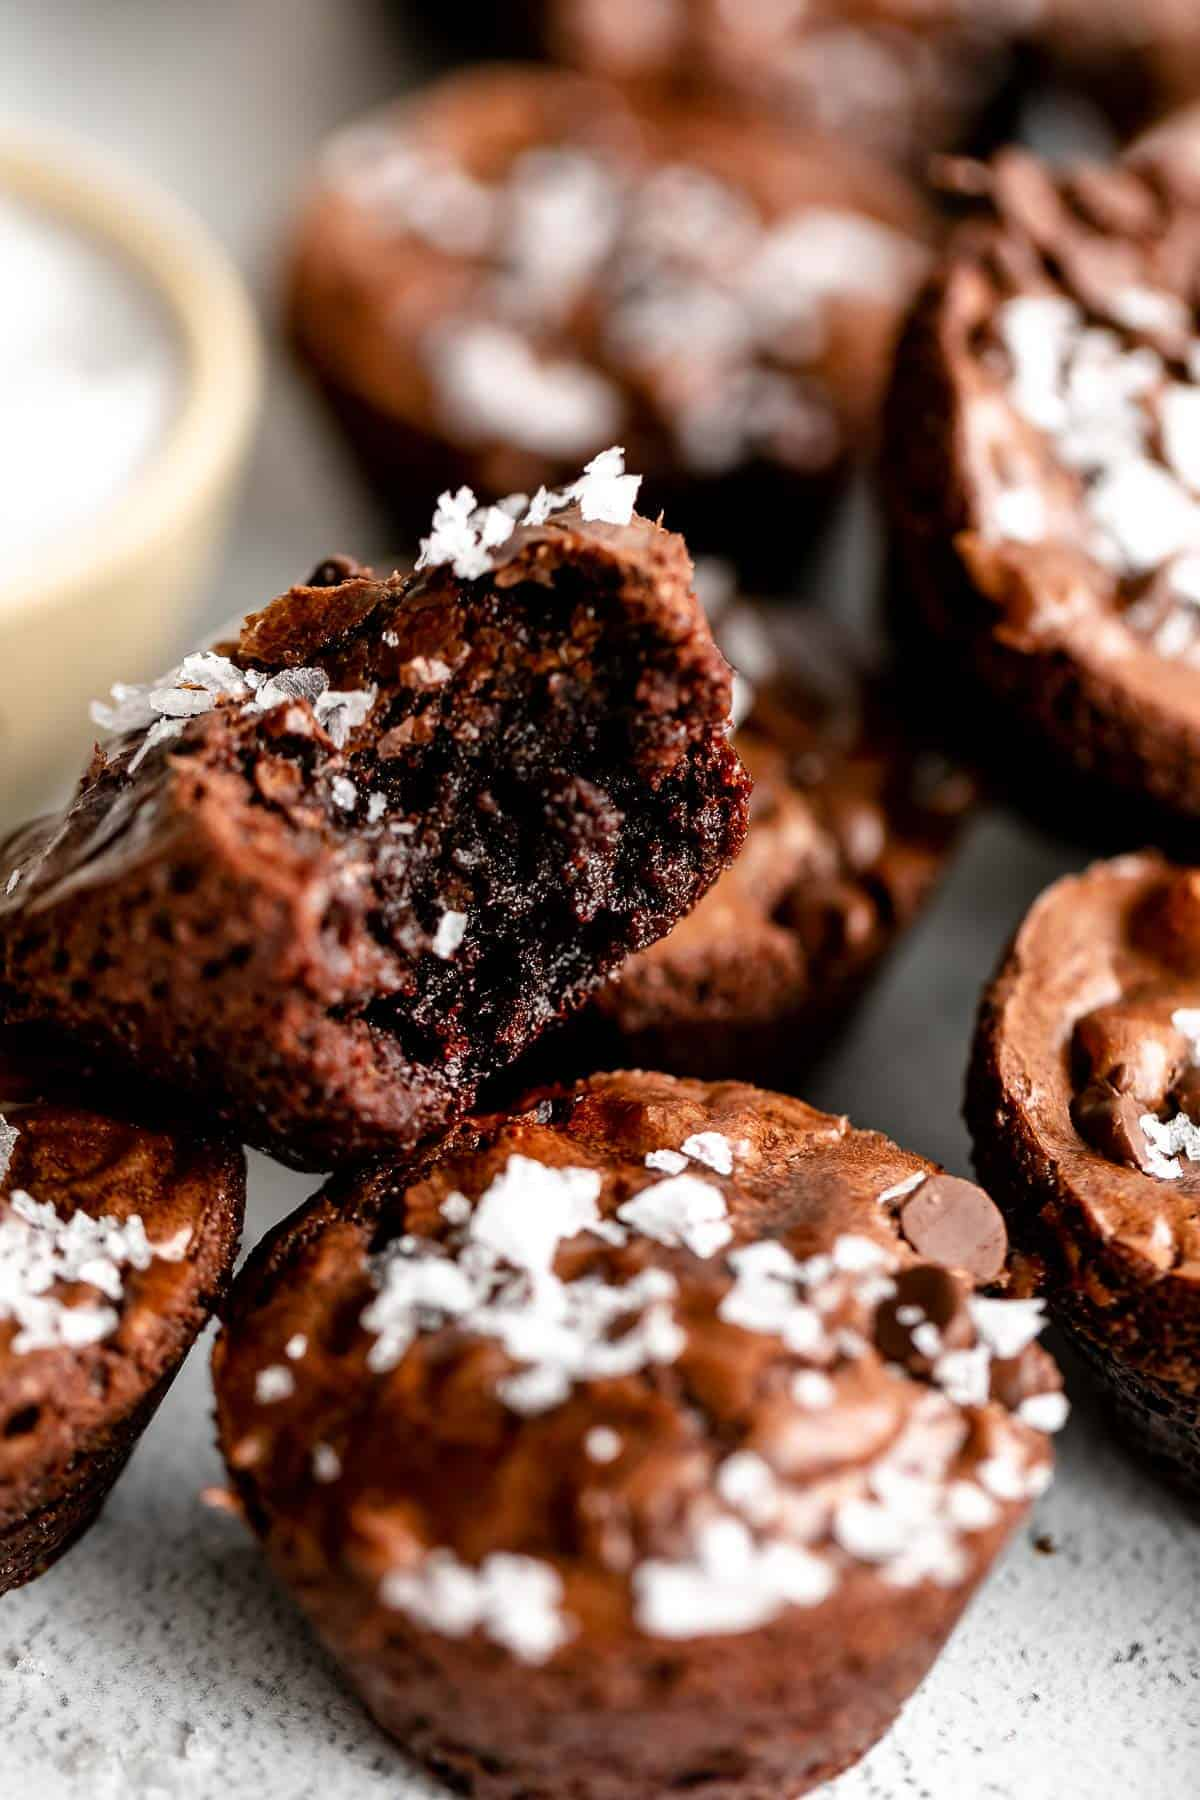 brownie bites with one bite taken out to show texture